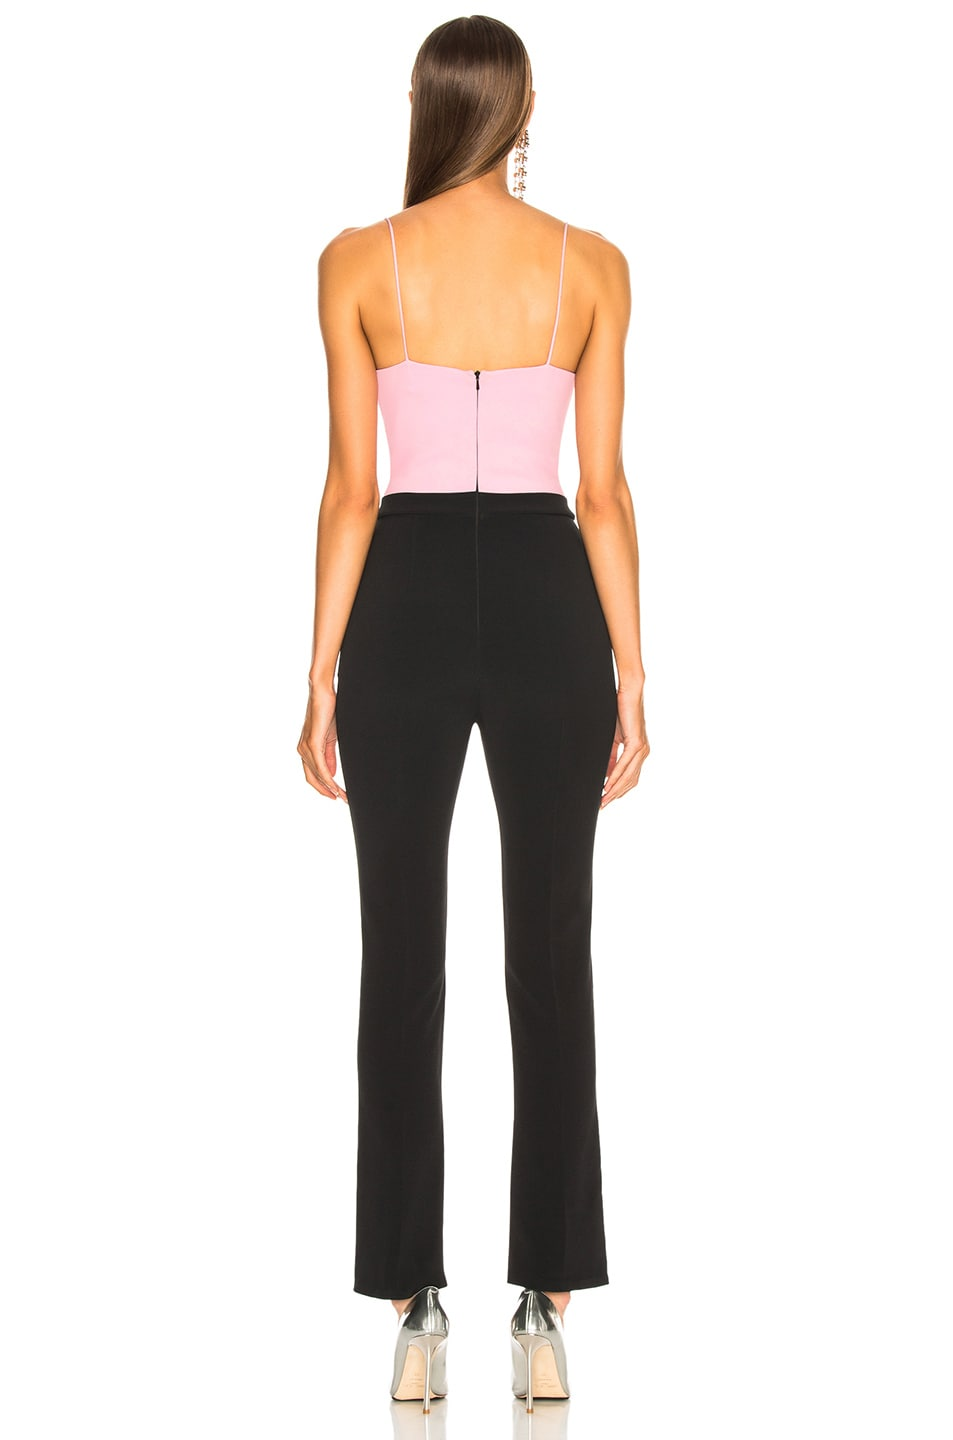 Image 3 of David Koma Sweetheart Neck Jumpsuit in Pink, Silver & Black